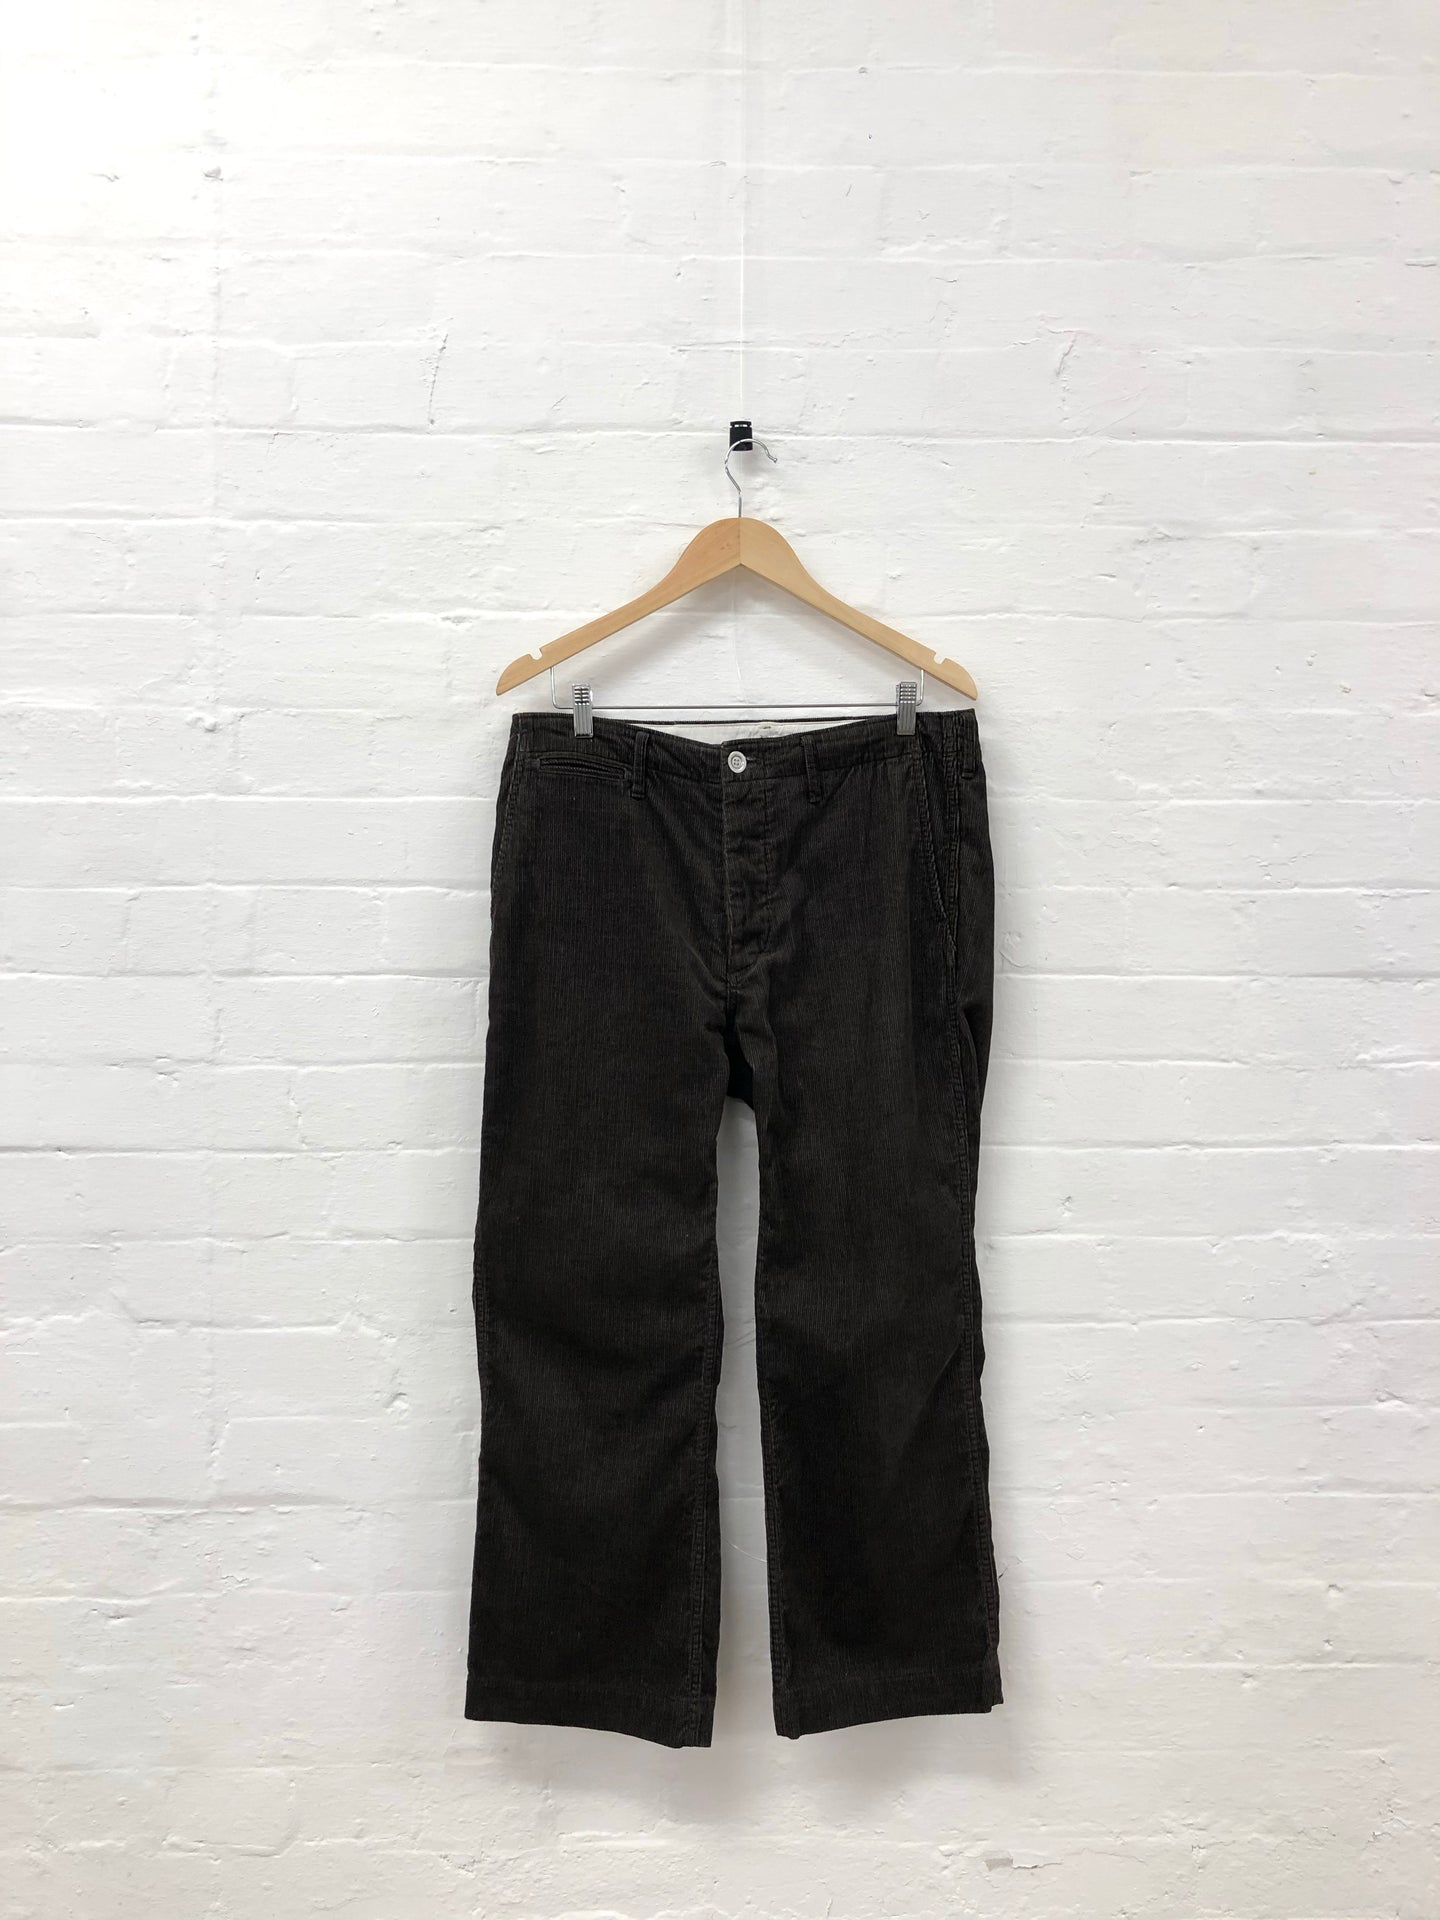 visvim brown corduroy pants <Br> size M